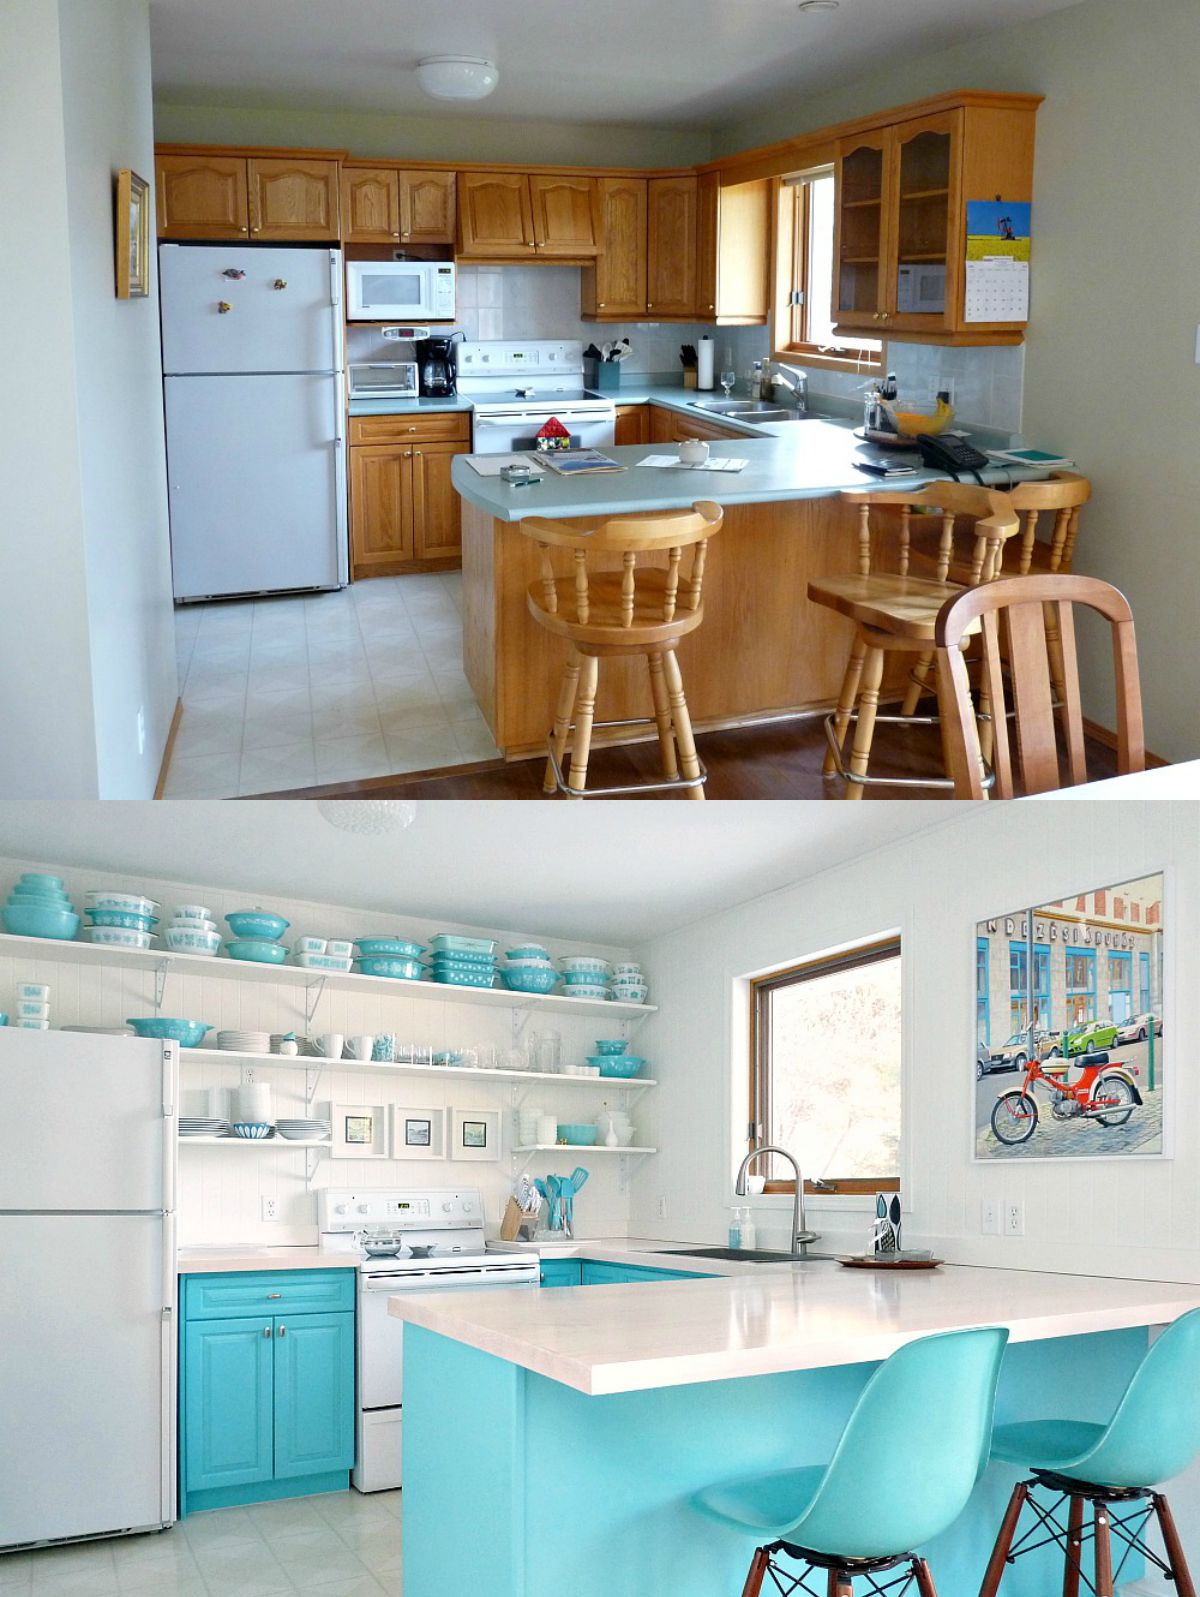 superb Budget Friendly Kitchen Makeovers #7: Before and After Budget-Friendly Aqua Kitchen Makeover